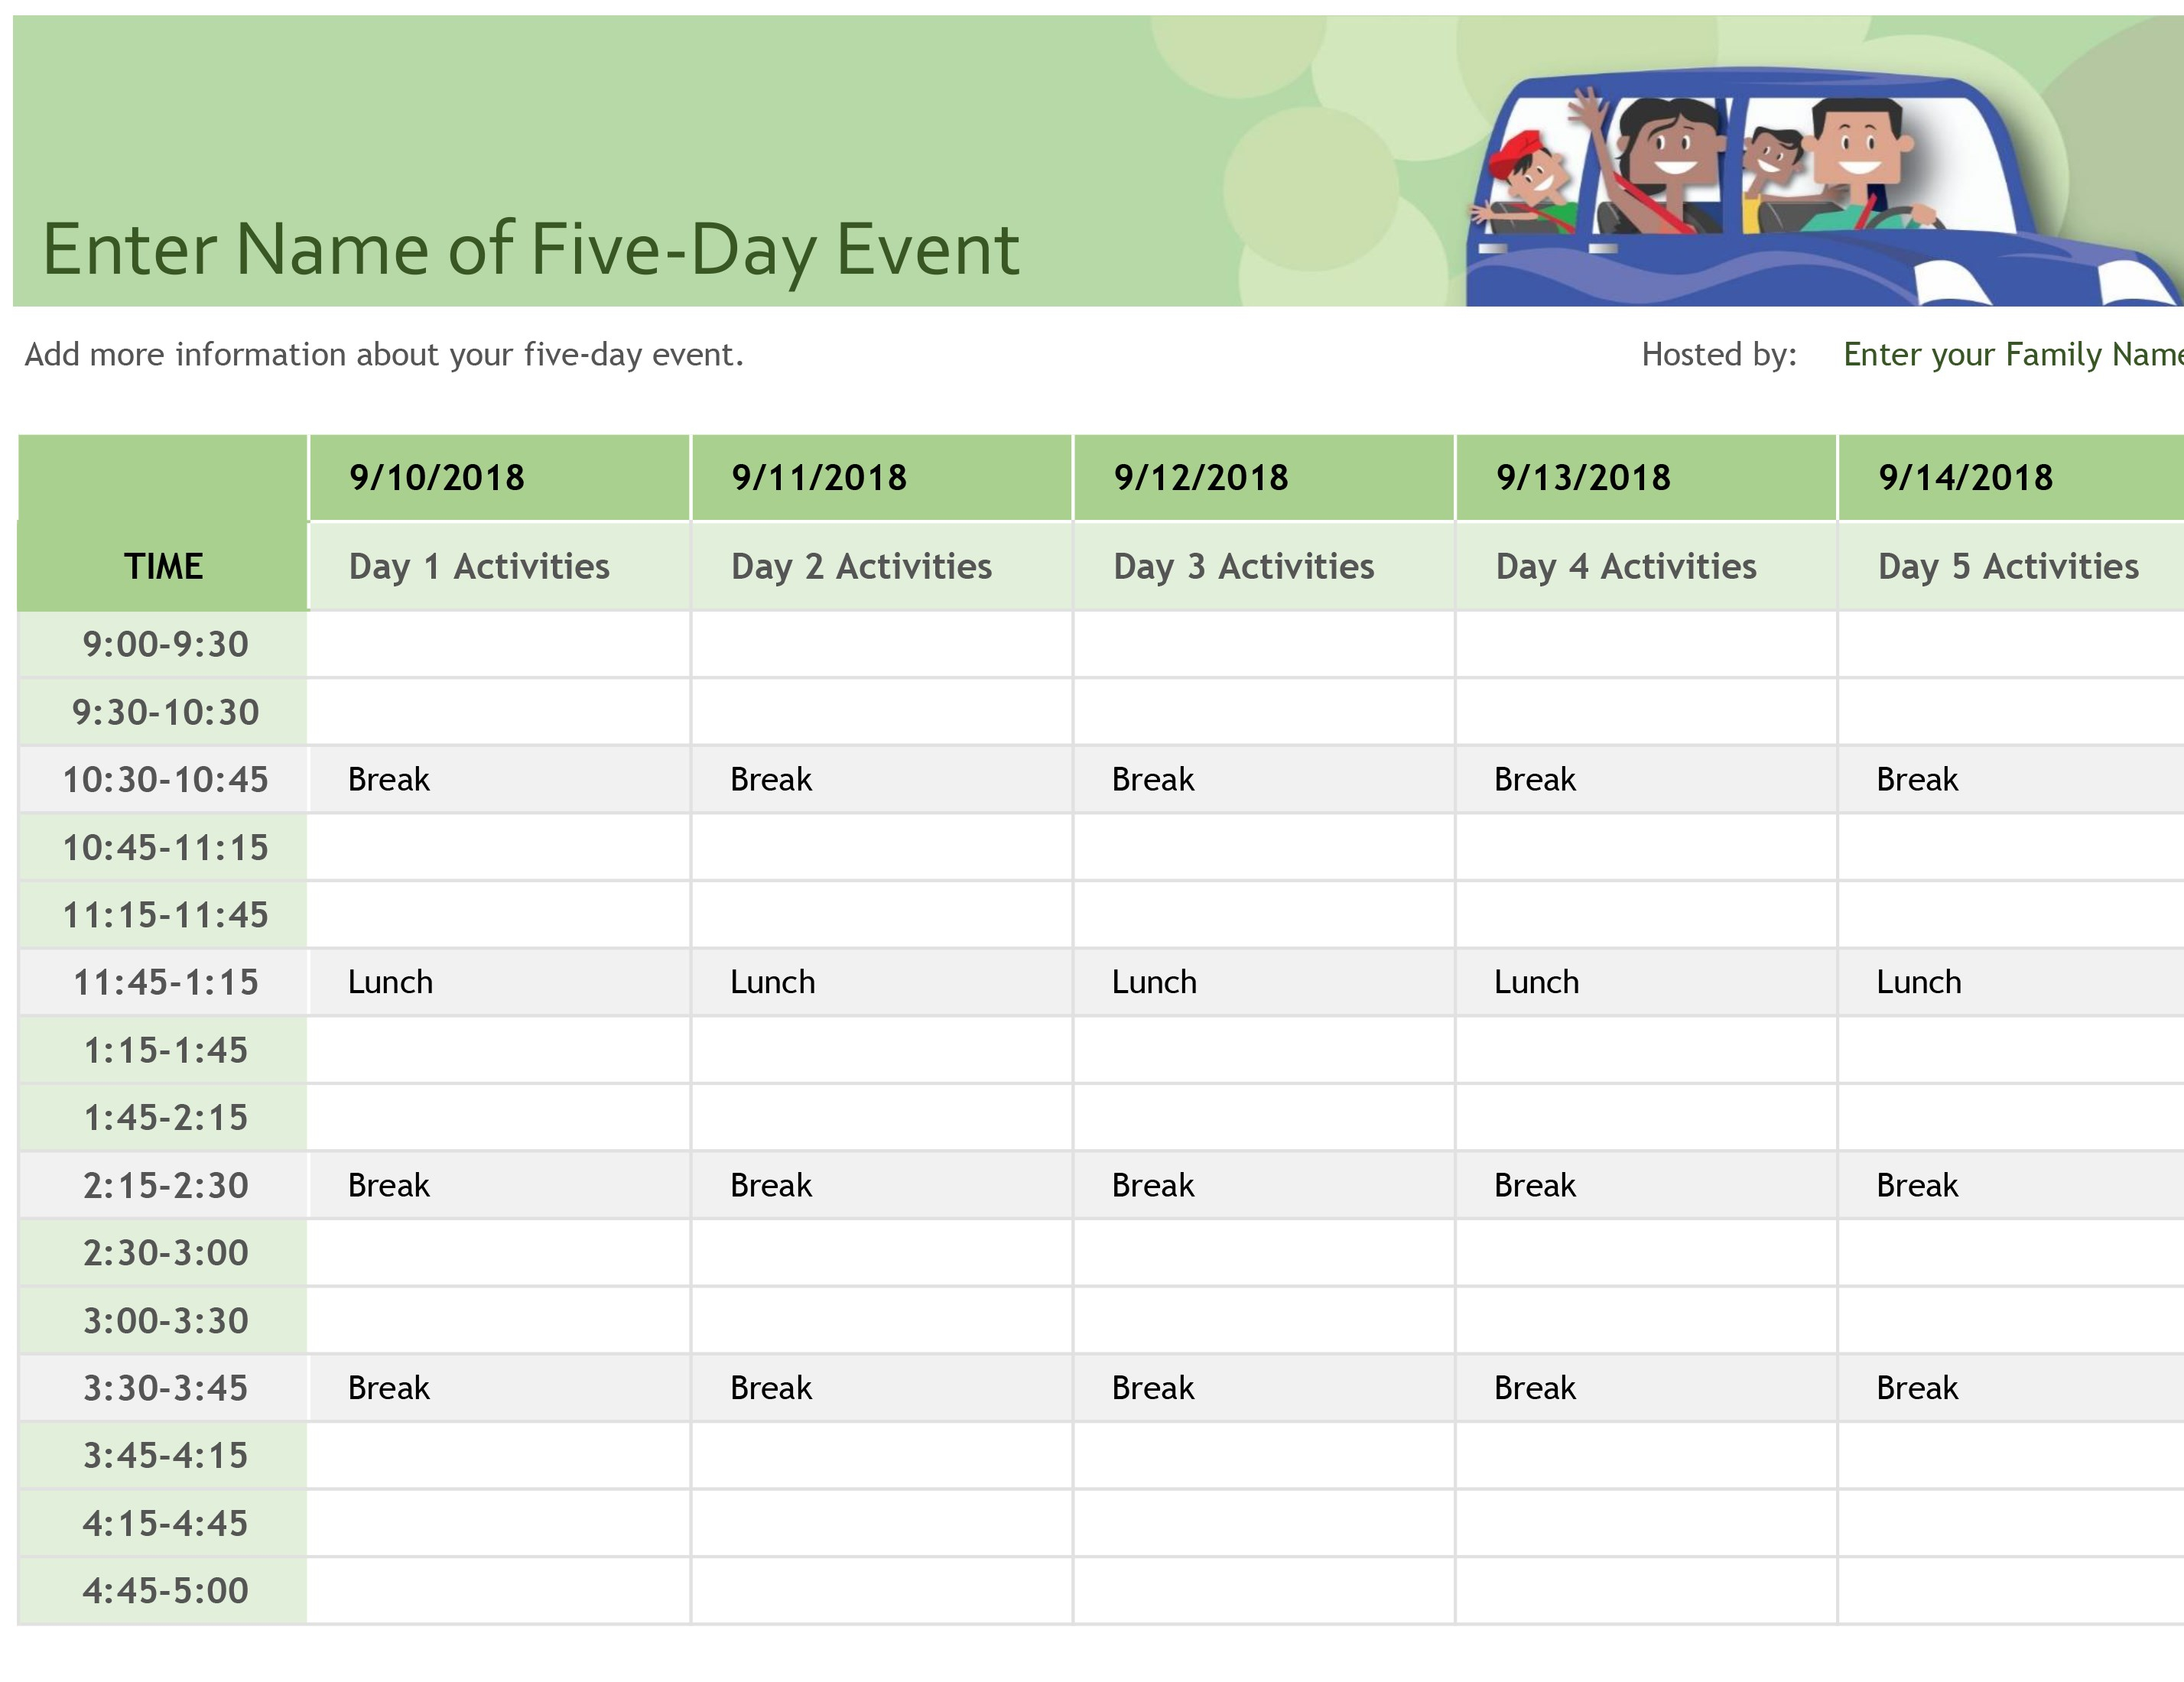 Schedule Template Summer Camp Daily Calendar | Smorad in Summer Camp Schedule Template Blank